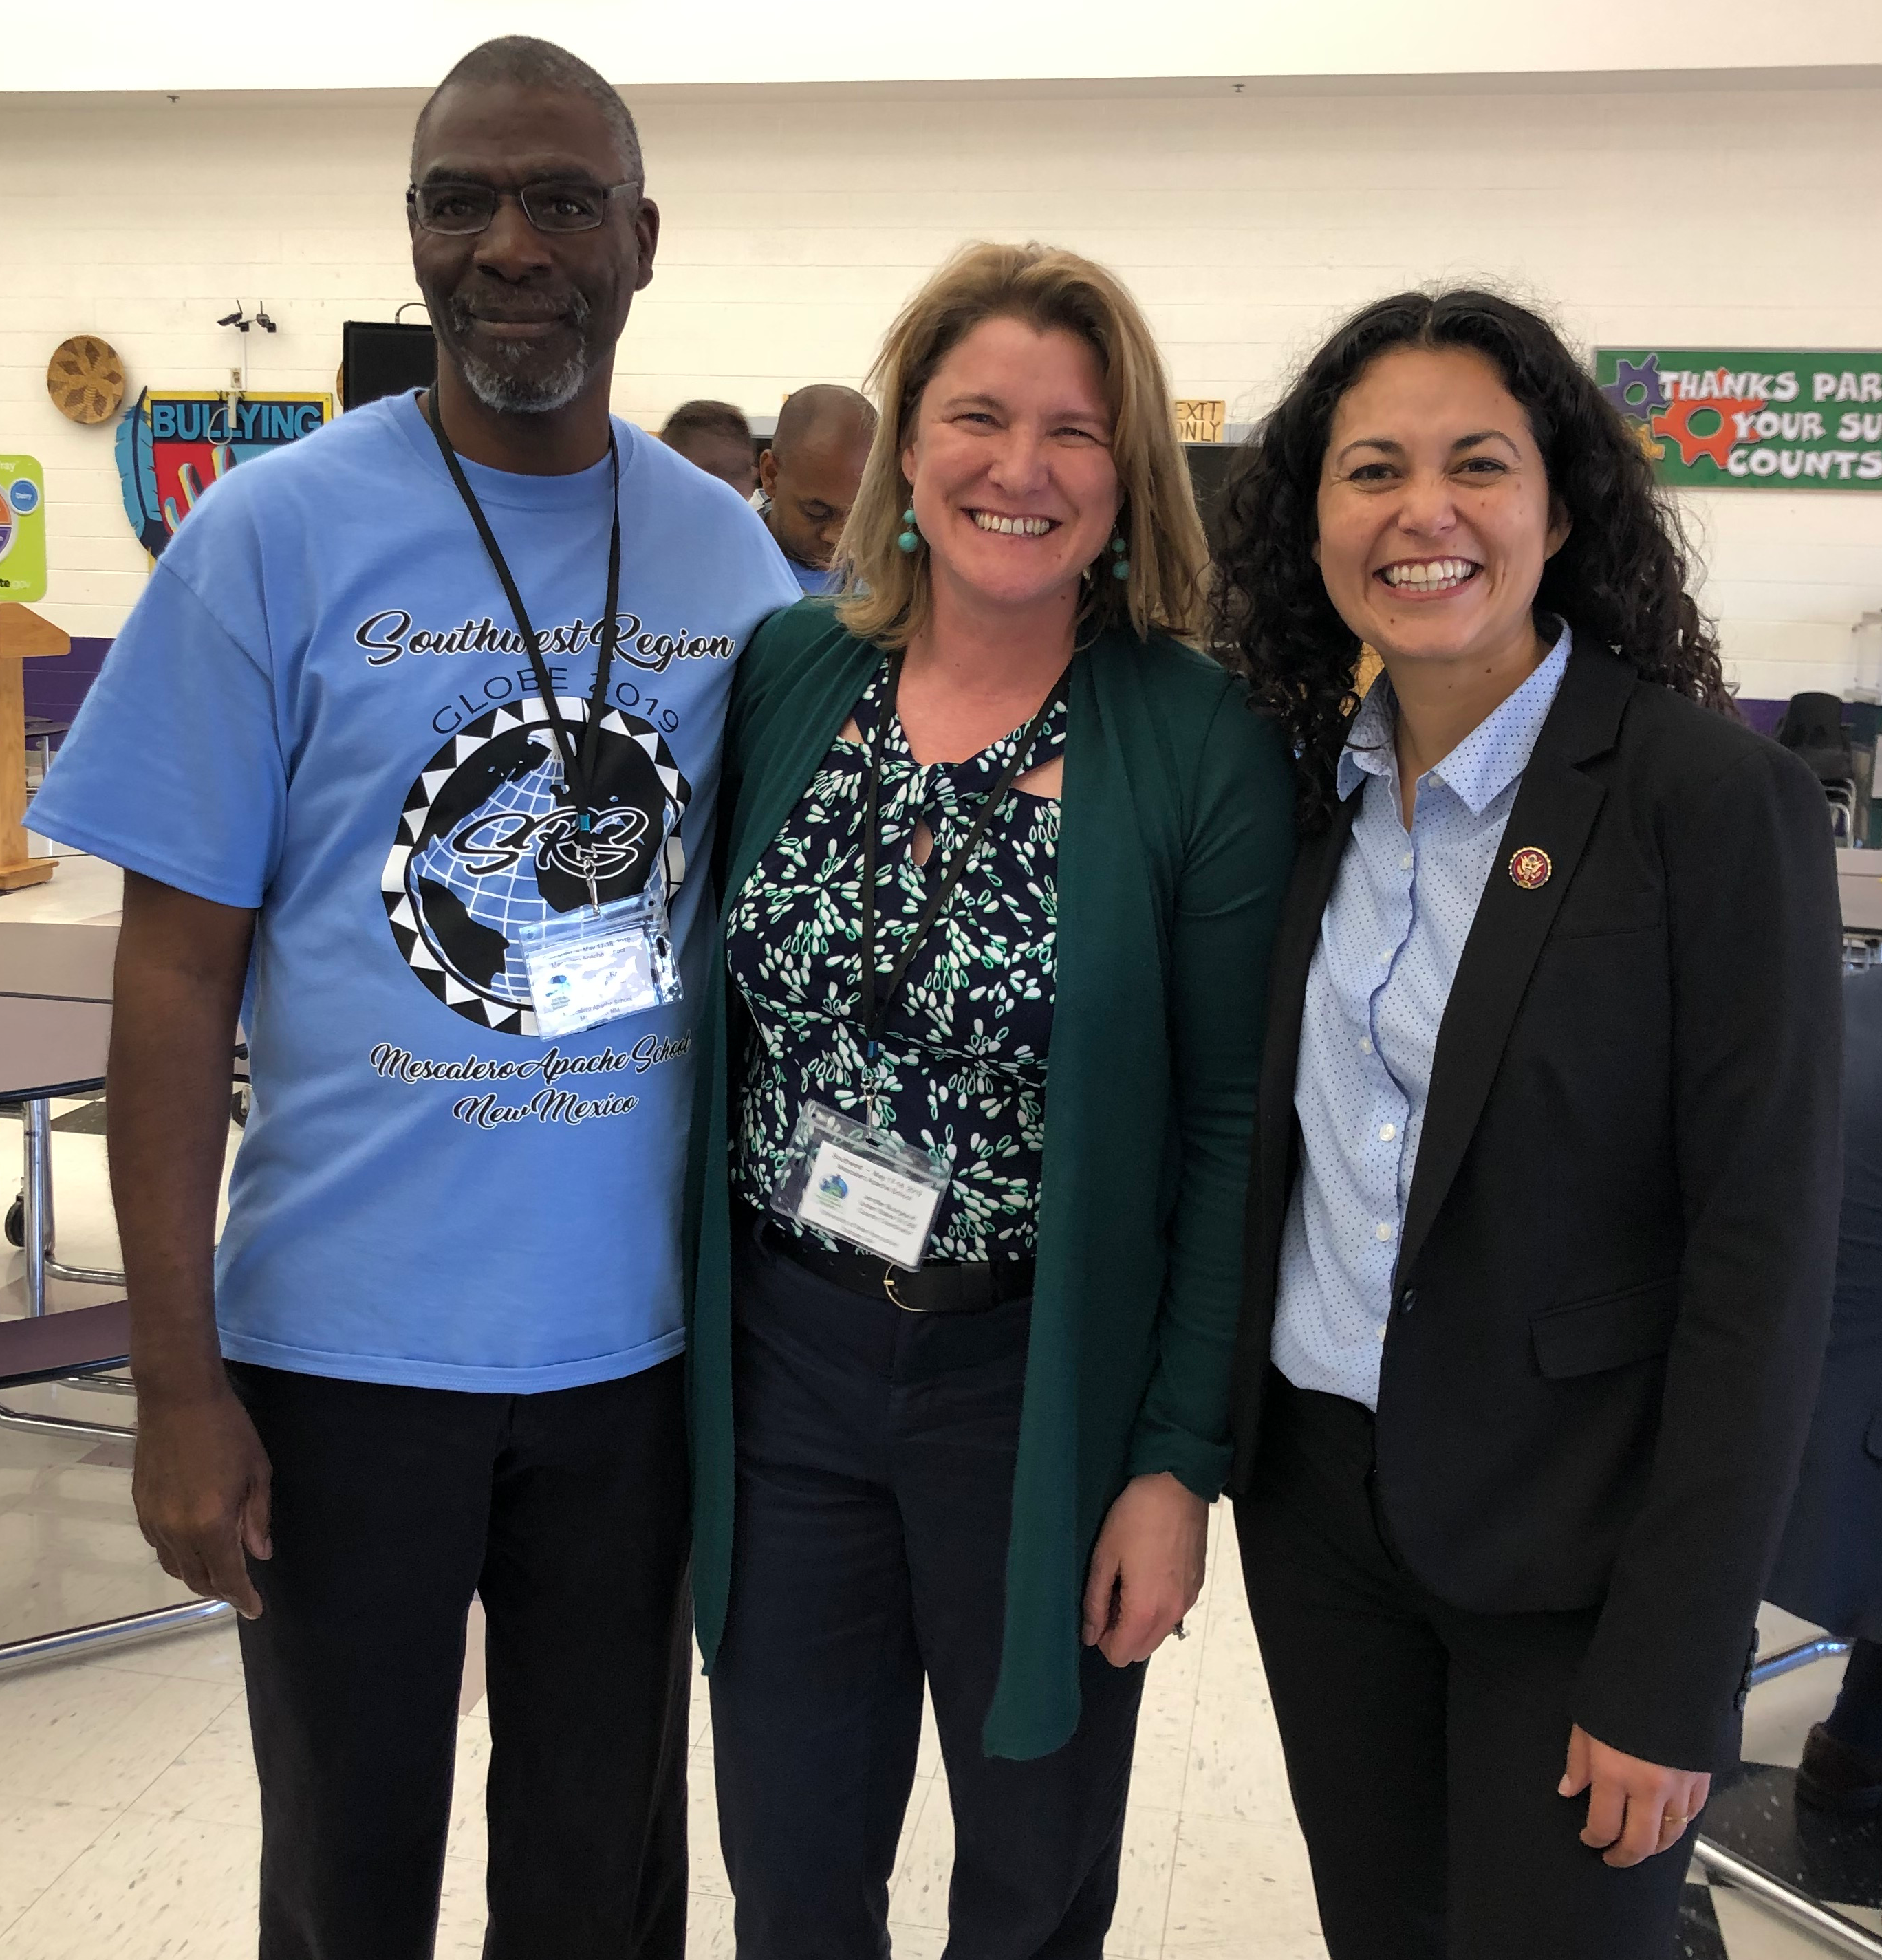 Nate Raynor, teacher and organizer, jennifer Bourgeault, US GLOBE Country Coordinator and Congresswoman Xochiti Torres-Small, smiling.